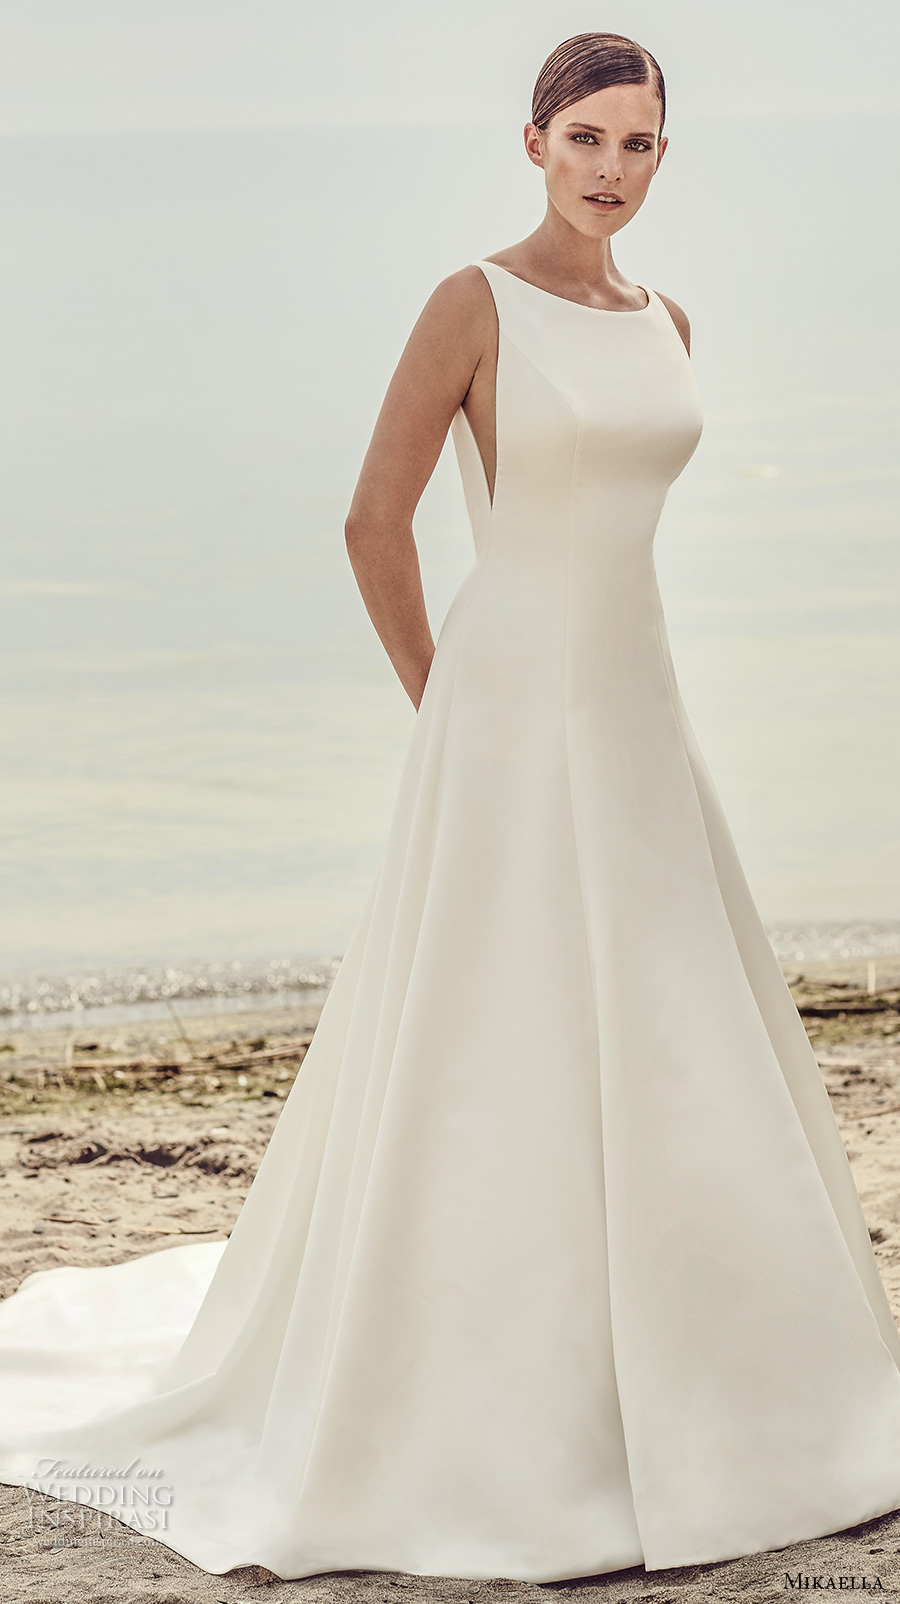 mikaella spring 2017 bridal sleeveless bateau neck simple clean design open side bodice a line wedding dress open low back chapel train (2115) mv